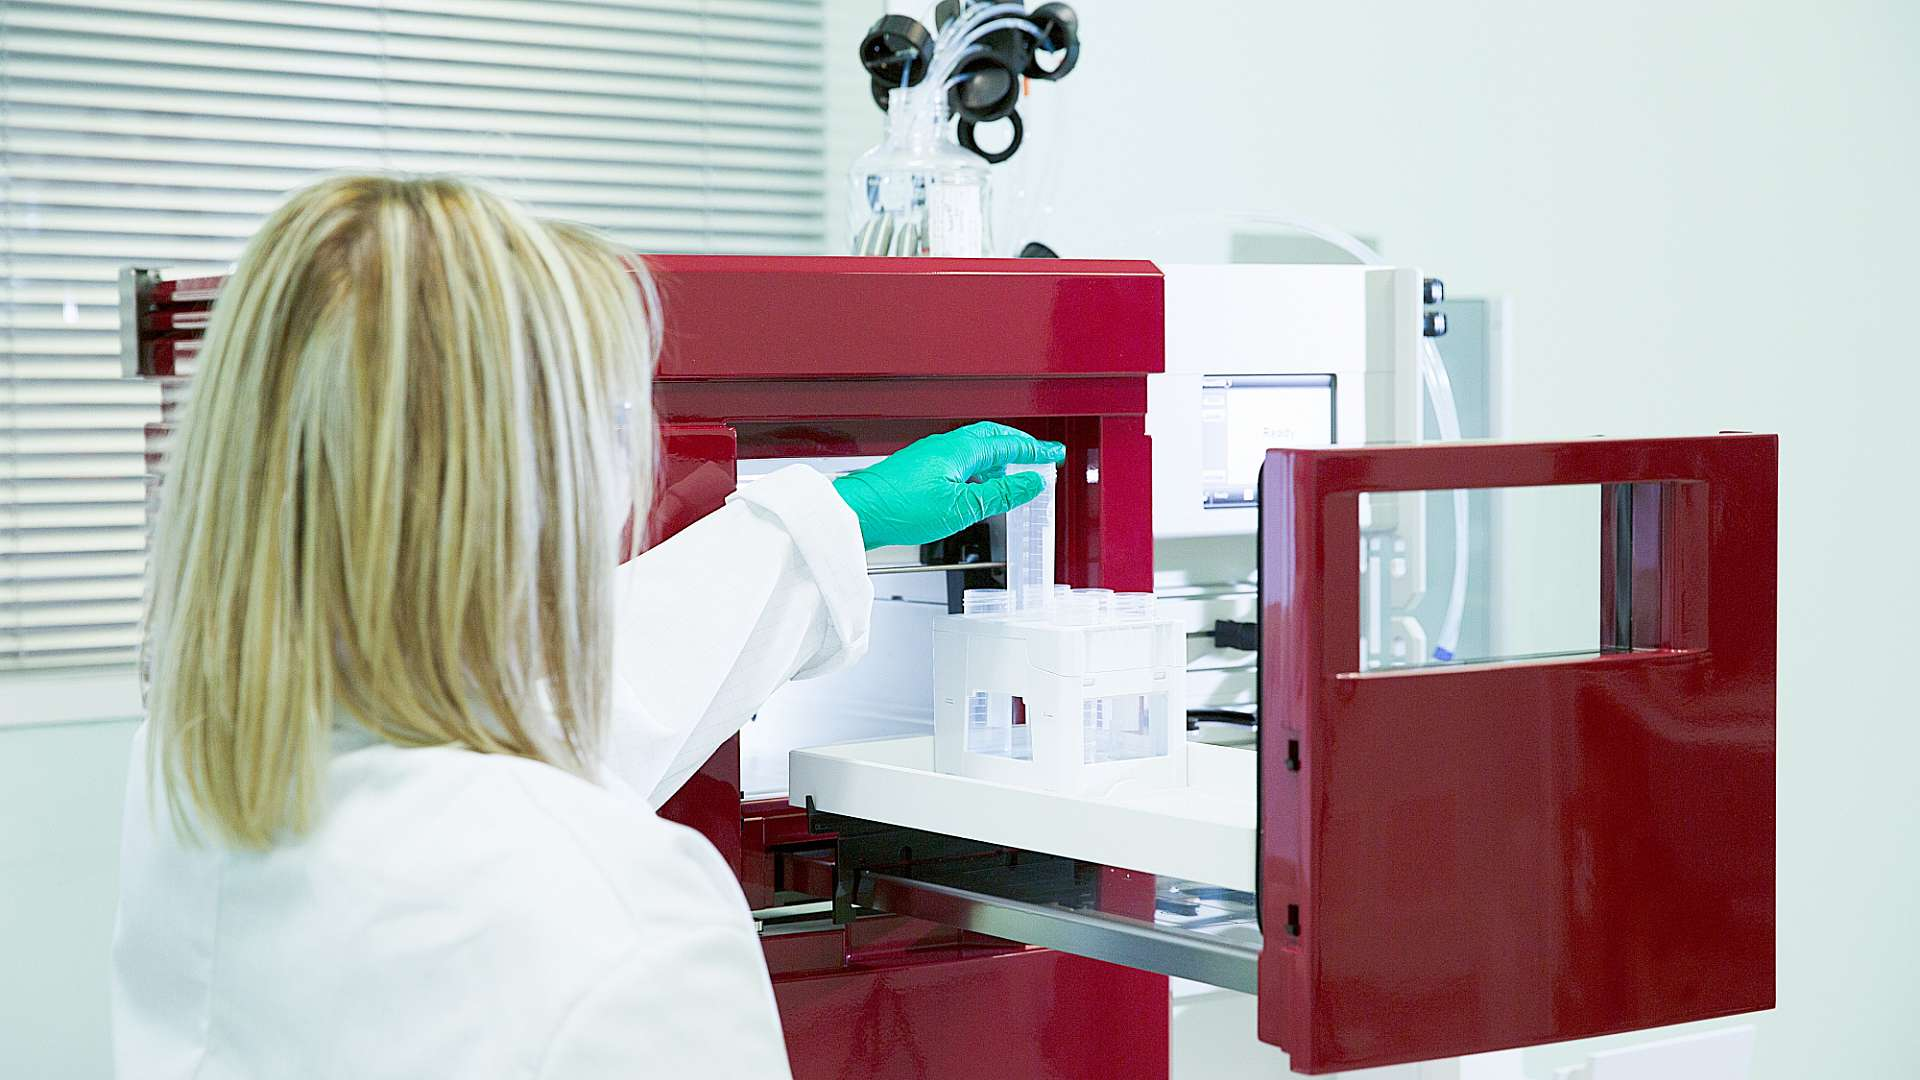 GE Healthcare Life Sciences' ÄKTA Avant Chromatography System is being used in the collaboration